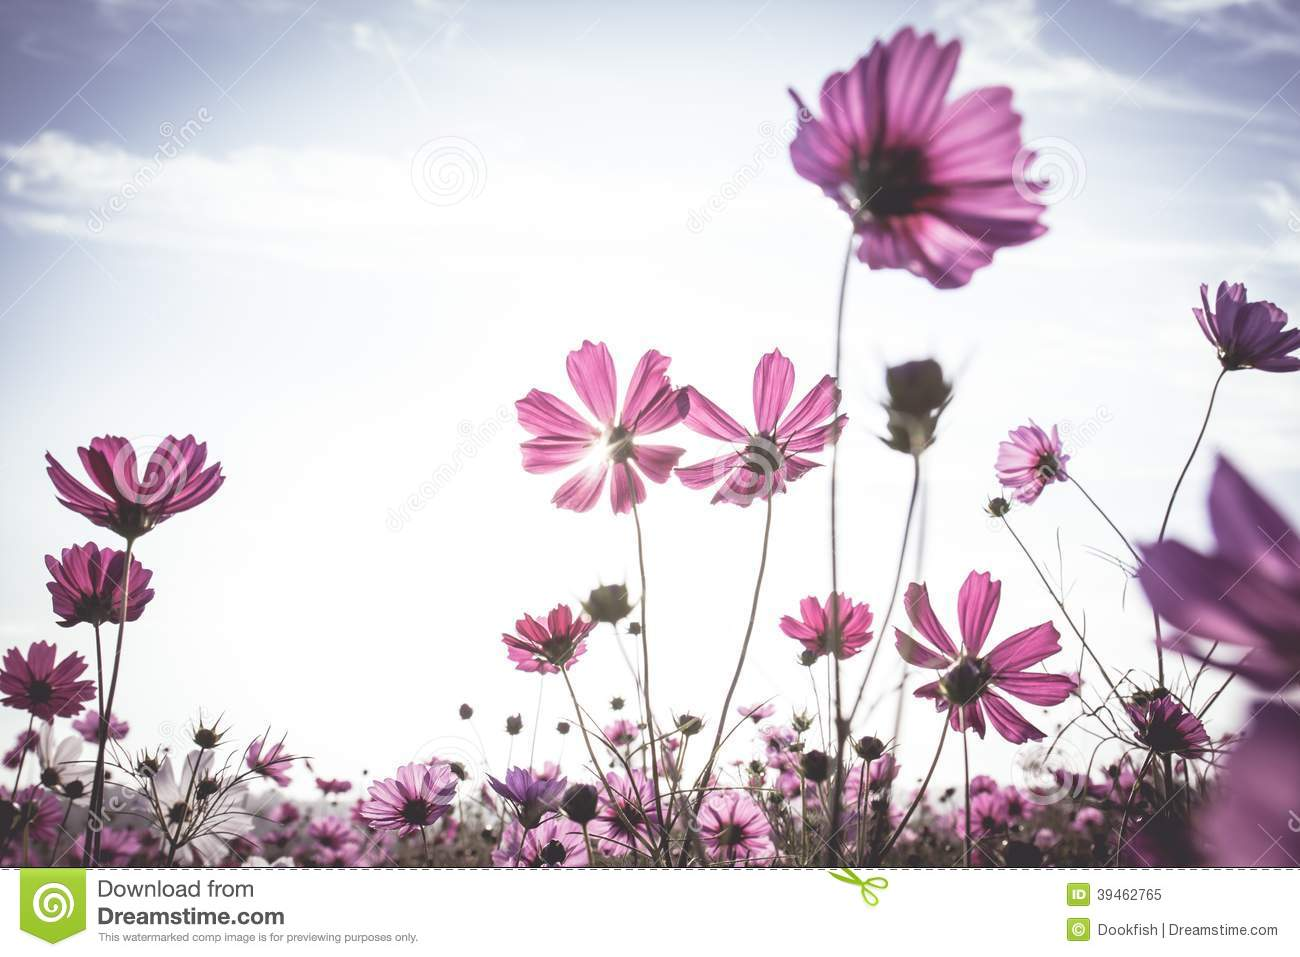 Vintage Cosmos Flowers Field Stock Photo - Image: 39462765